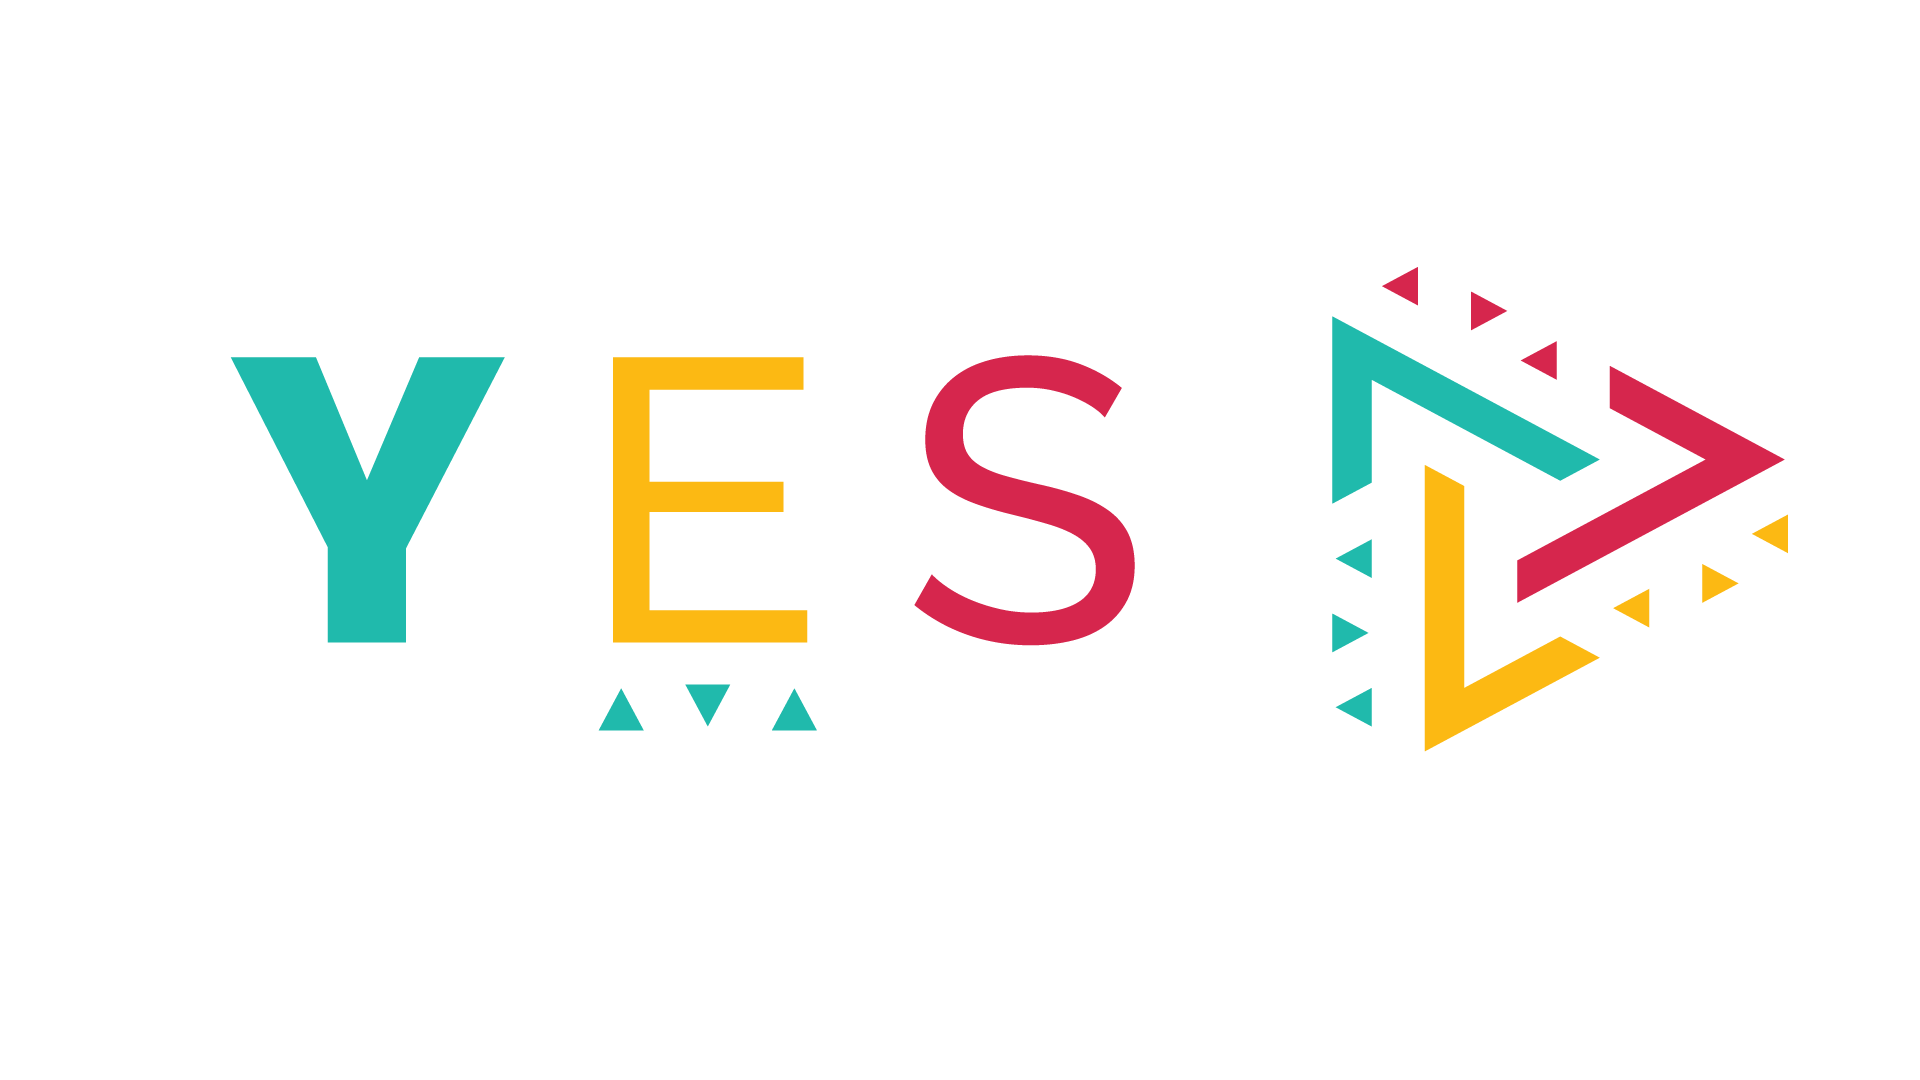 Yesproject.eu